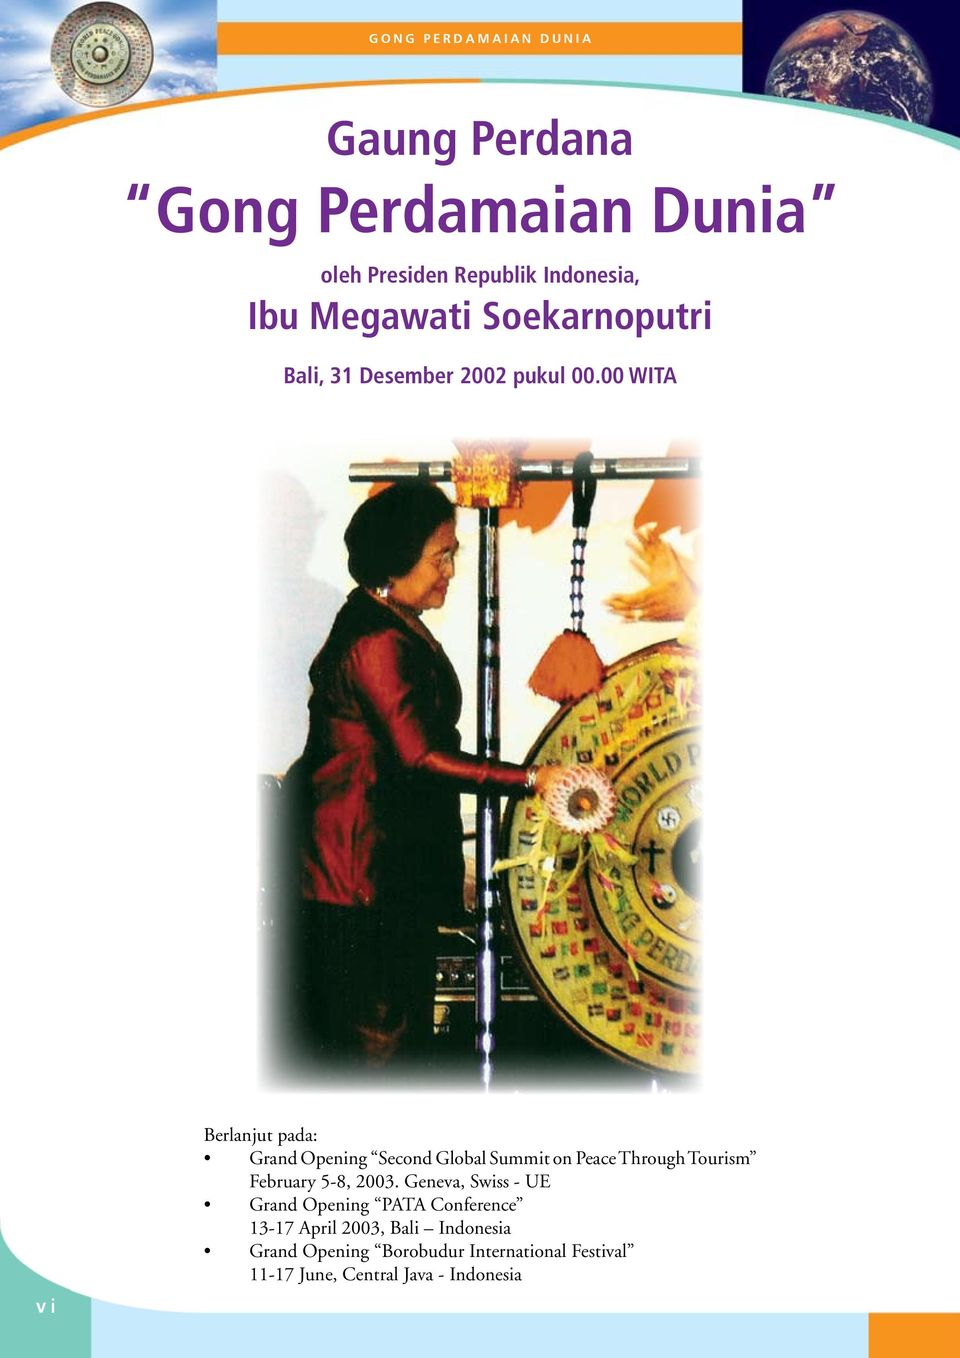 00 WITA vi Berlanjut pada: Grand Opening Second Global Summit on Peace Through Tourism February 5-8,